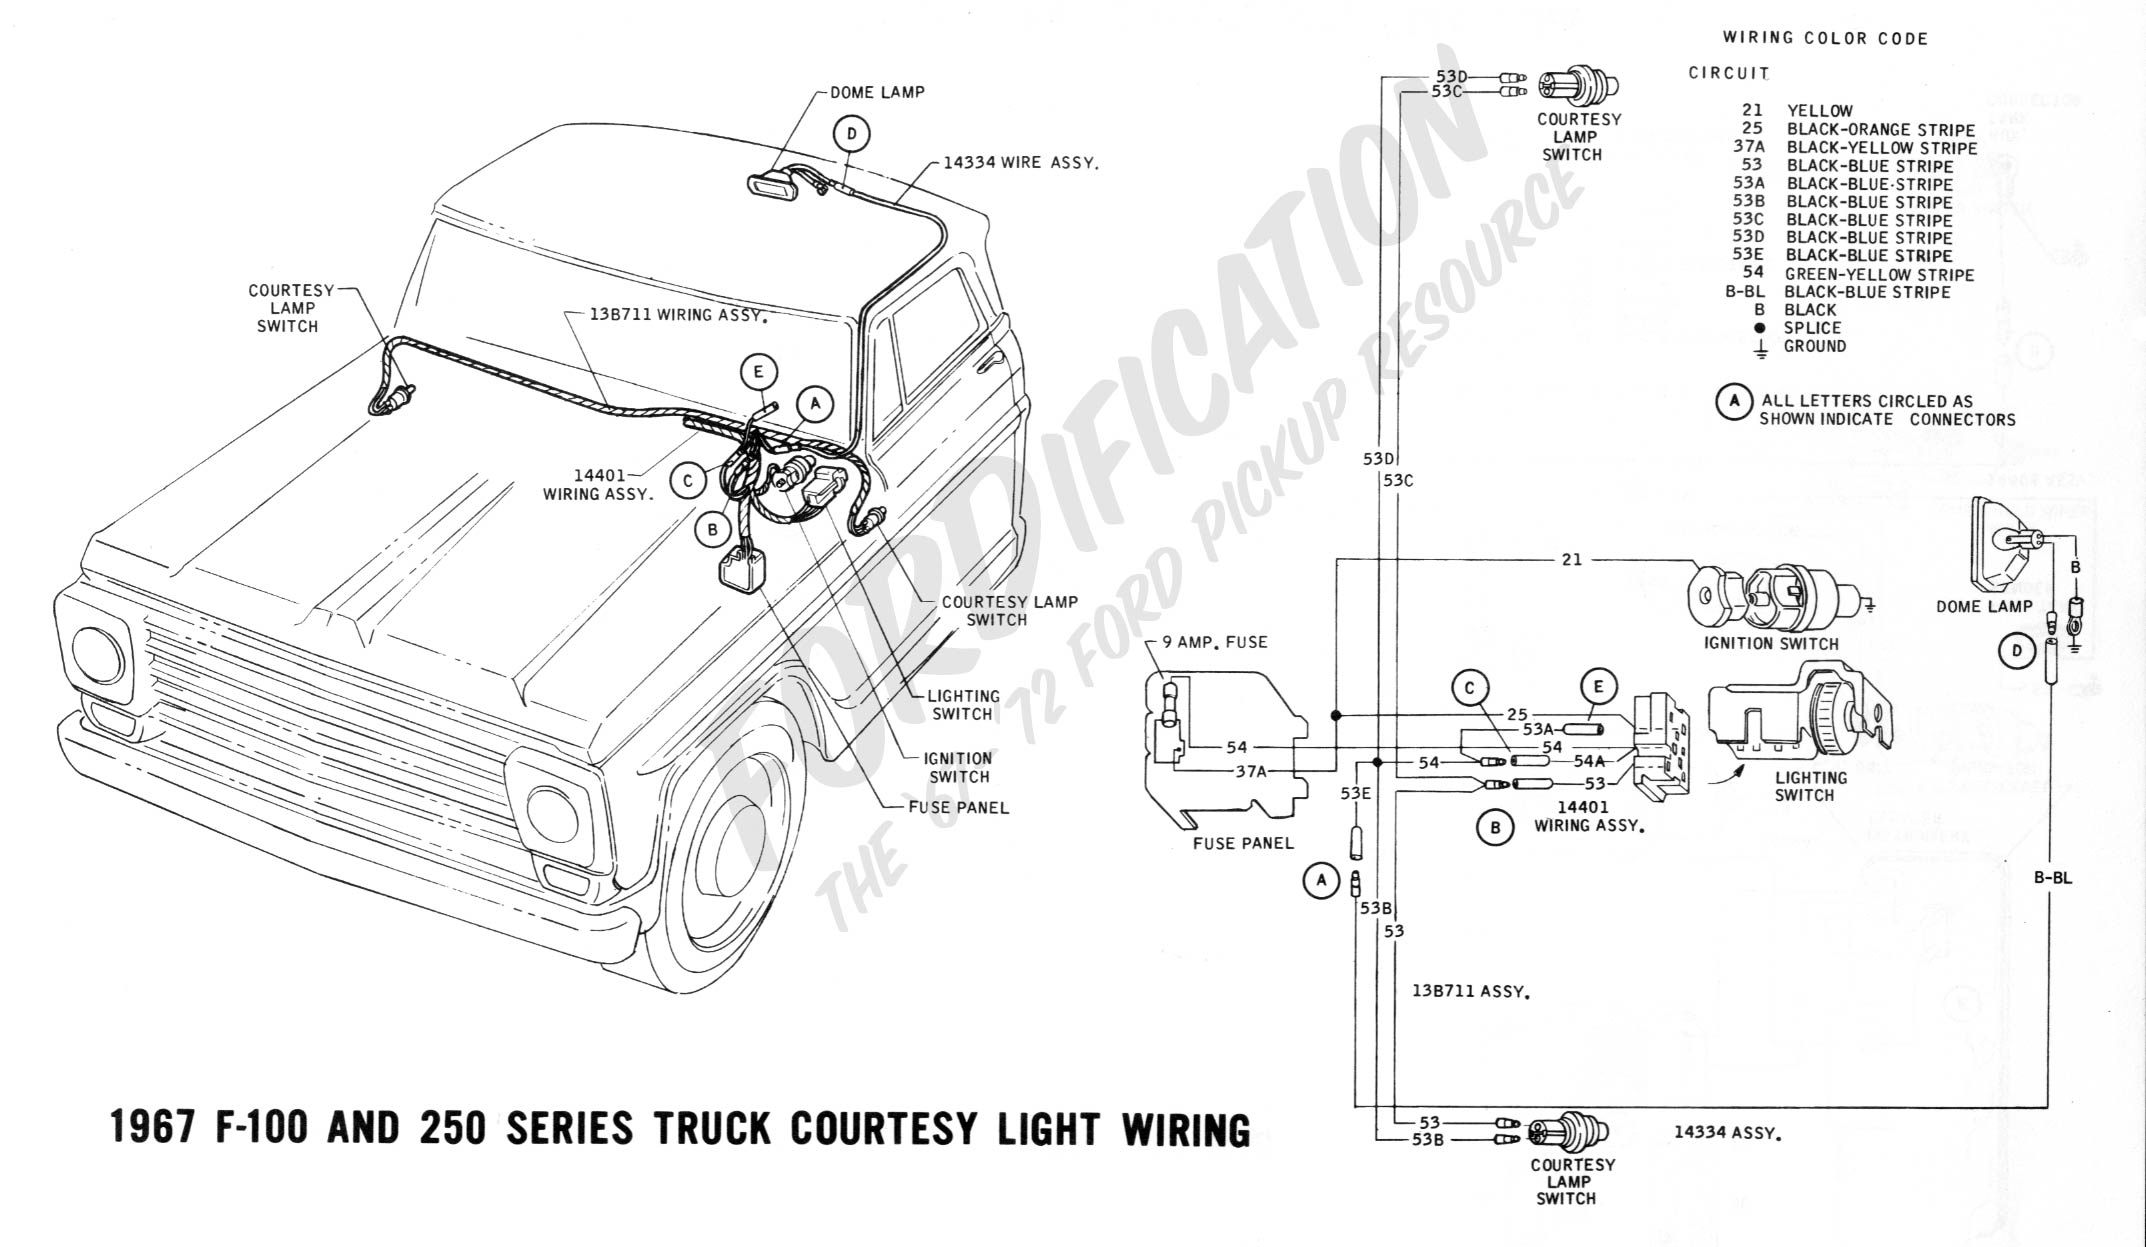 1967 ford f250 wiring diagram wiring diagram portal u2022 rh graphiko co